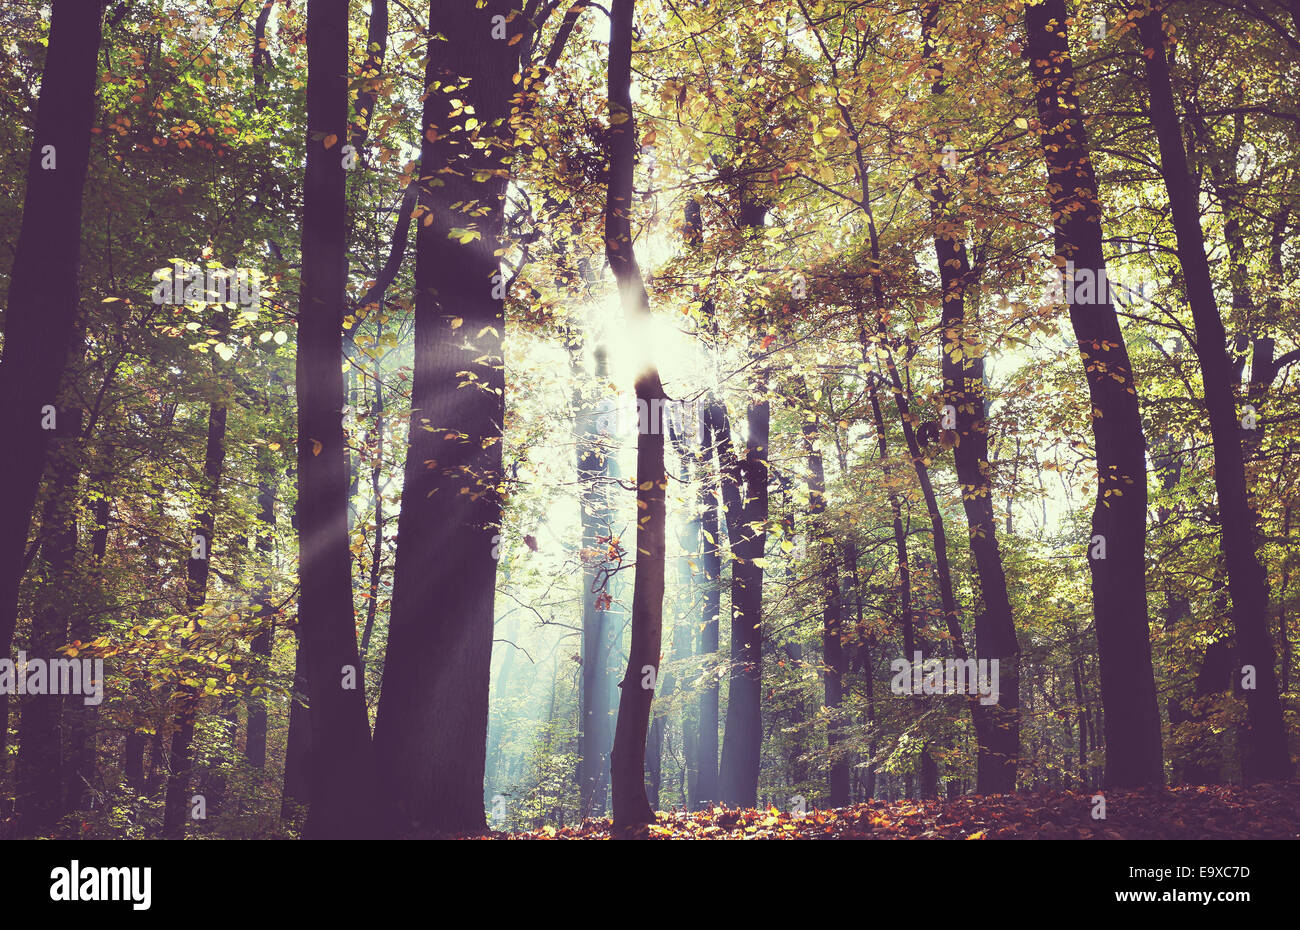 Vintage filtered picture of a dark autumn forest. - Stock Image